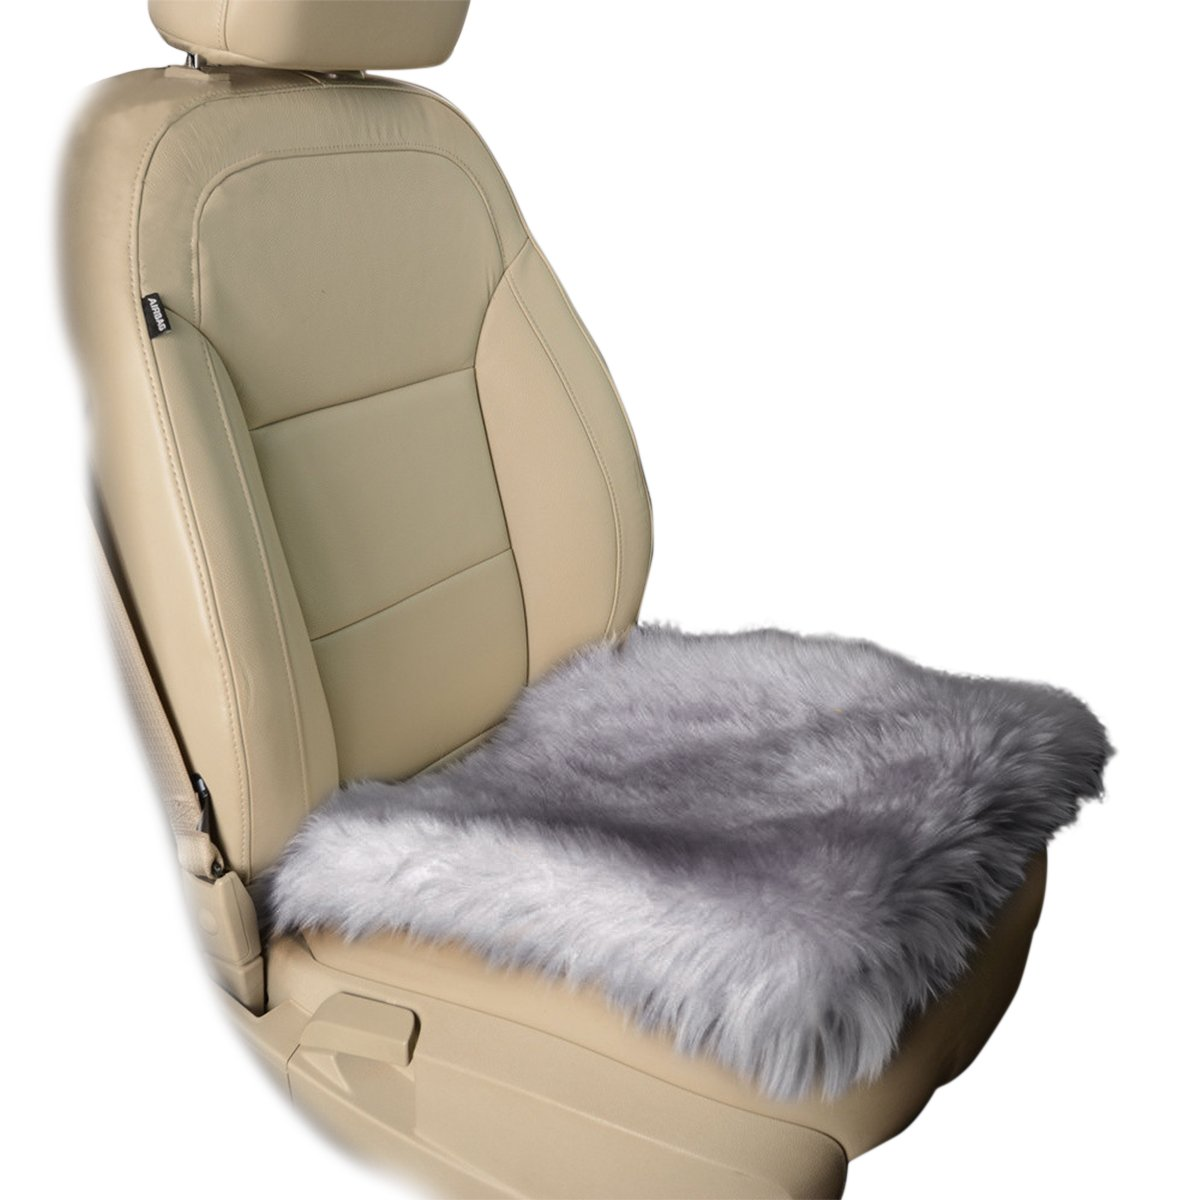 zone tech gray faux sheepskin car seat home cushion fur pad cover warm mat ebay. Black Bedroom Furniture Sets. Home Design Ideas